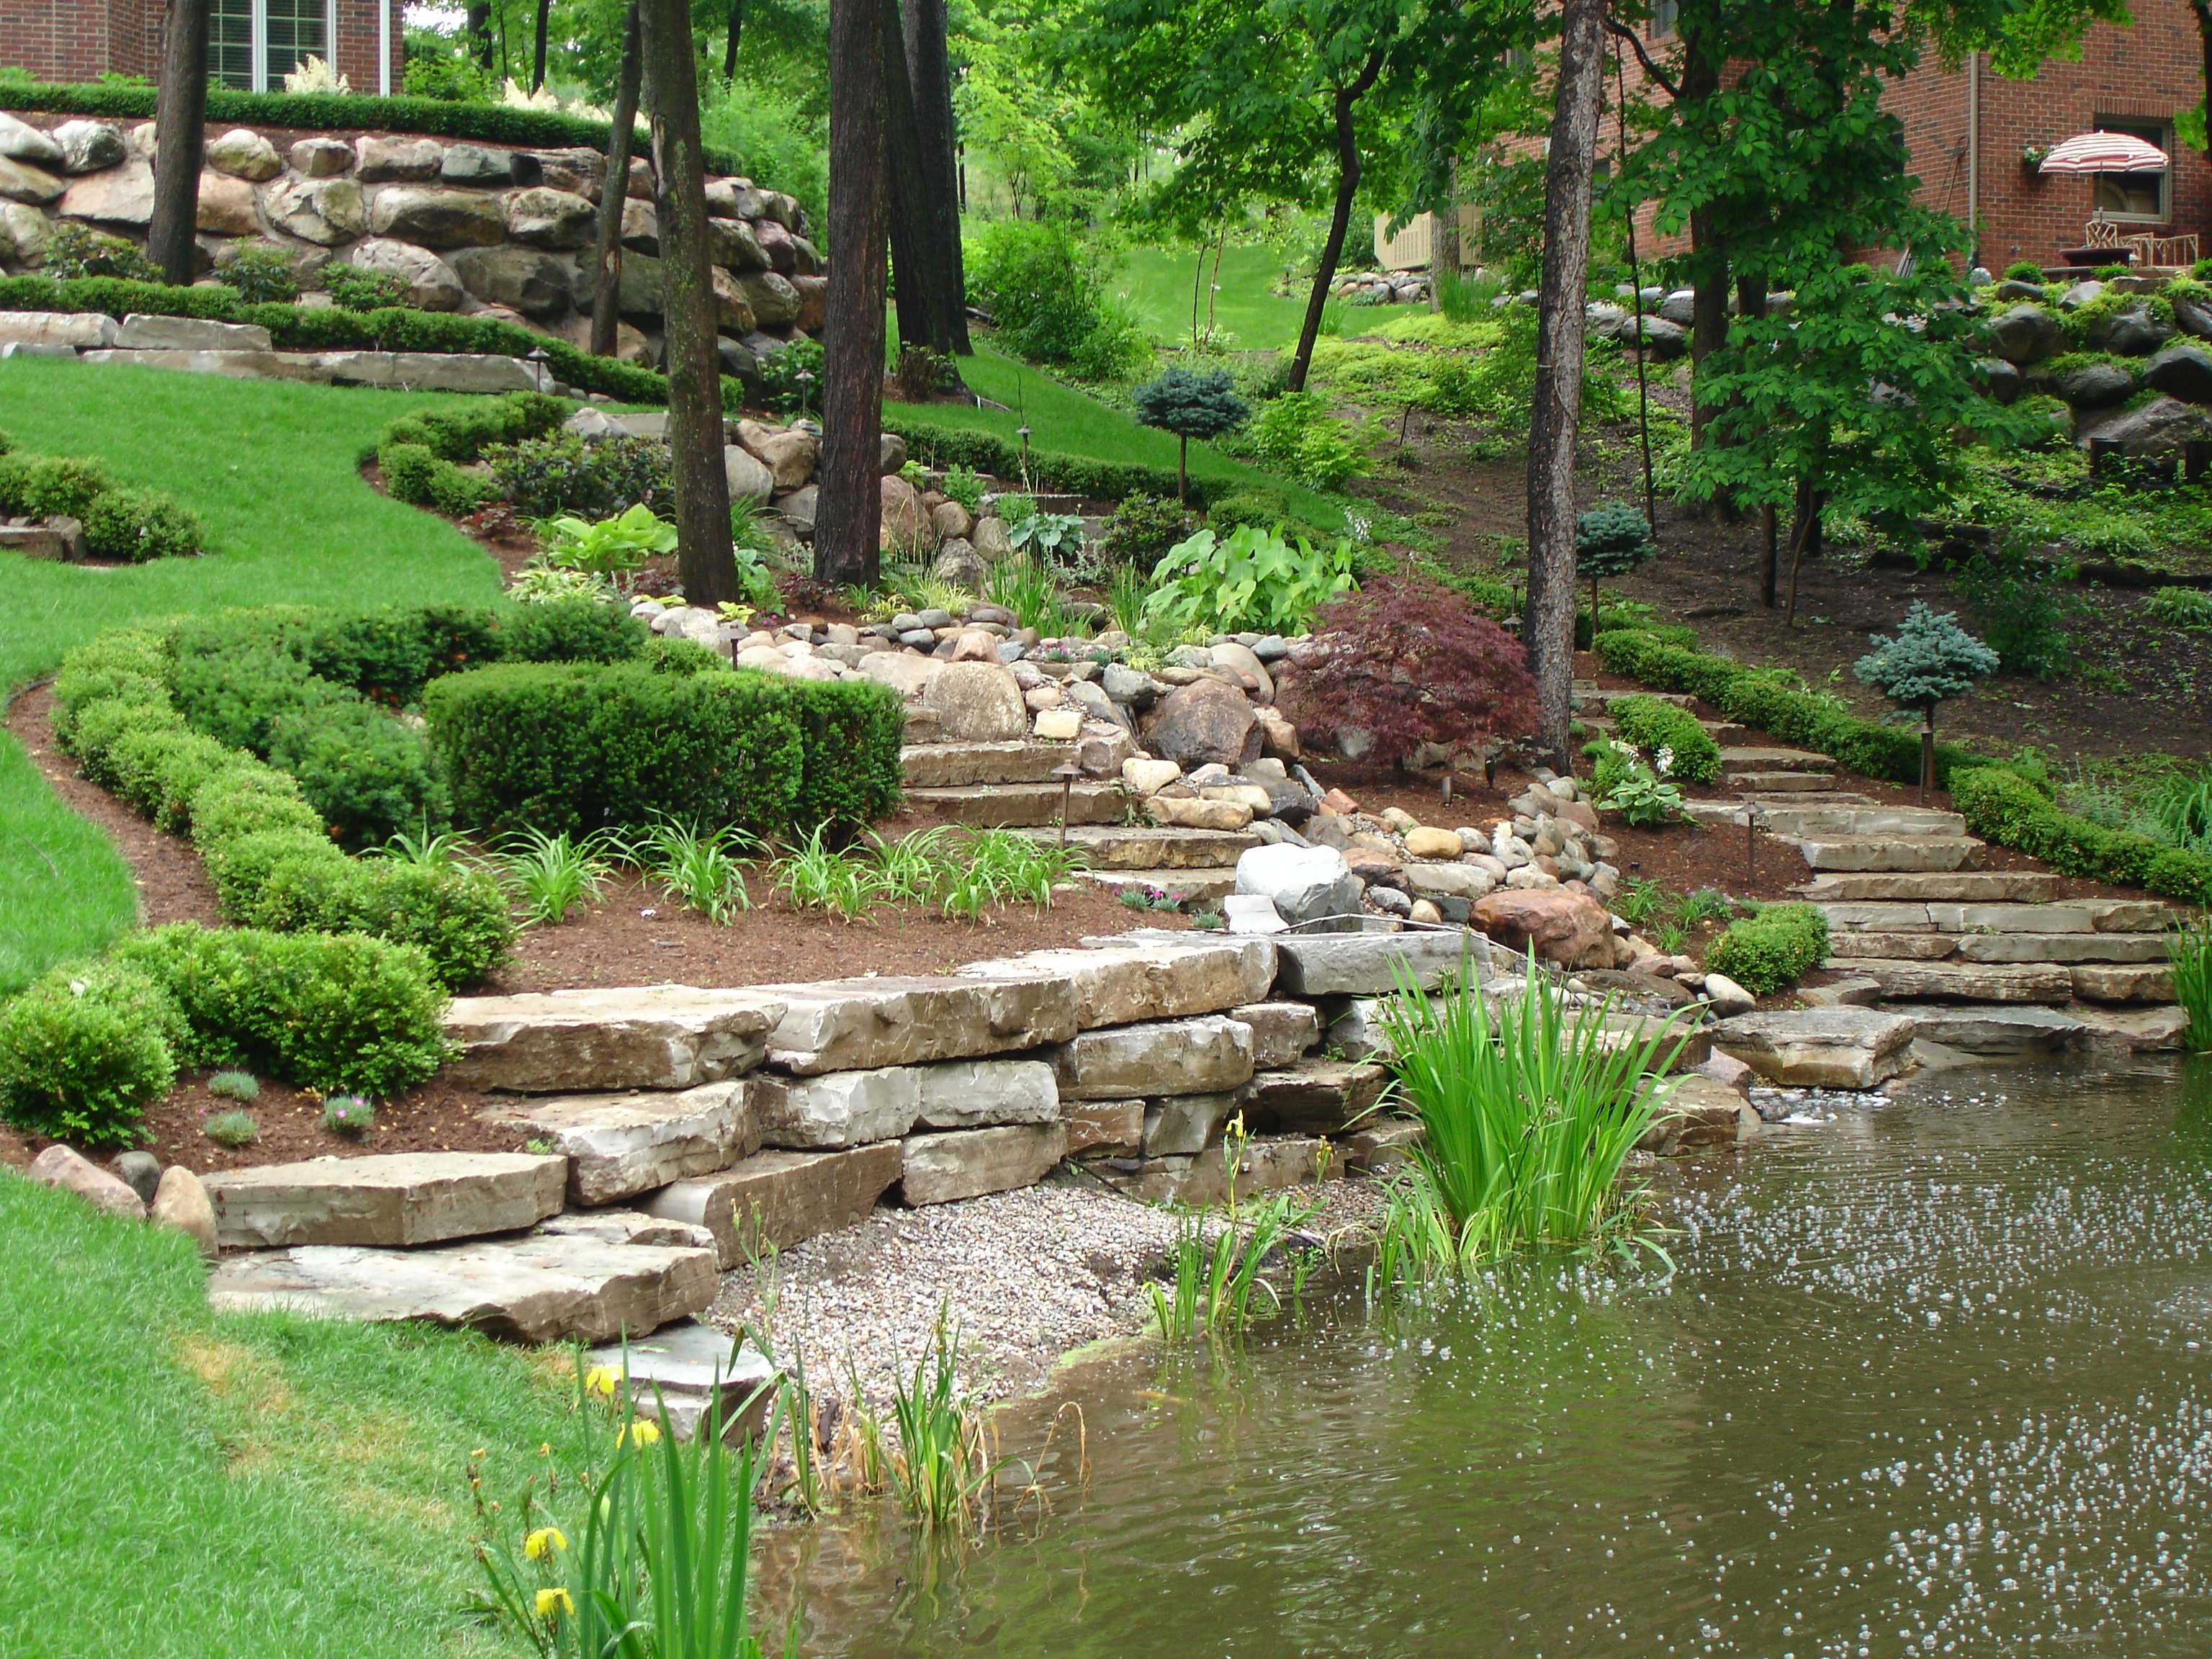 Image of: 106 Best Outdoor Ideas New House Images On Pinterest Pertaining To Drainage Ditch Landscaping Ideas Natural Drainage Ditch Landscaping Ideas